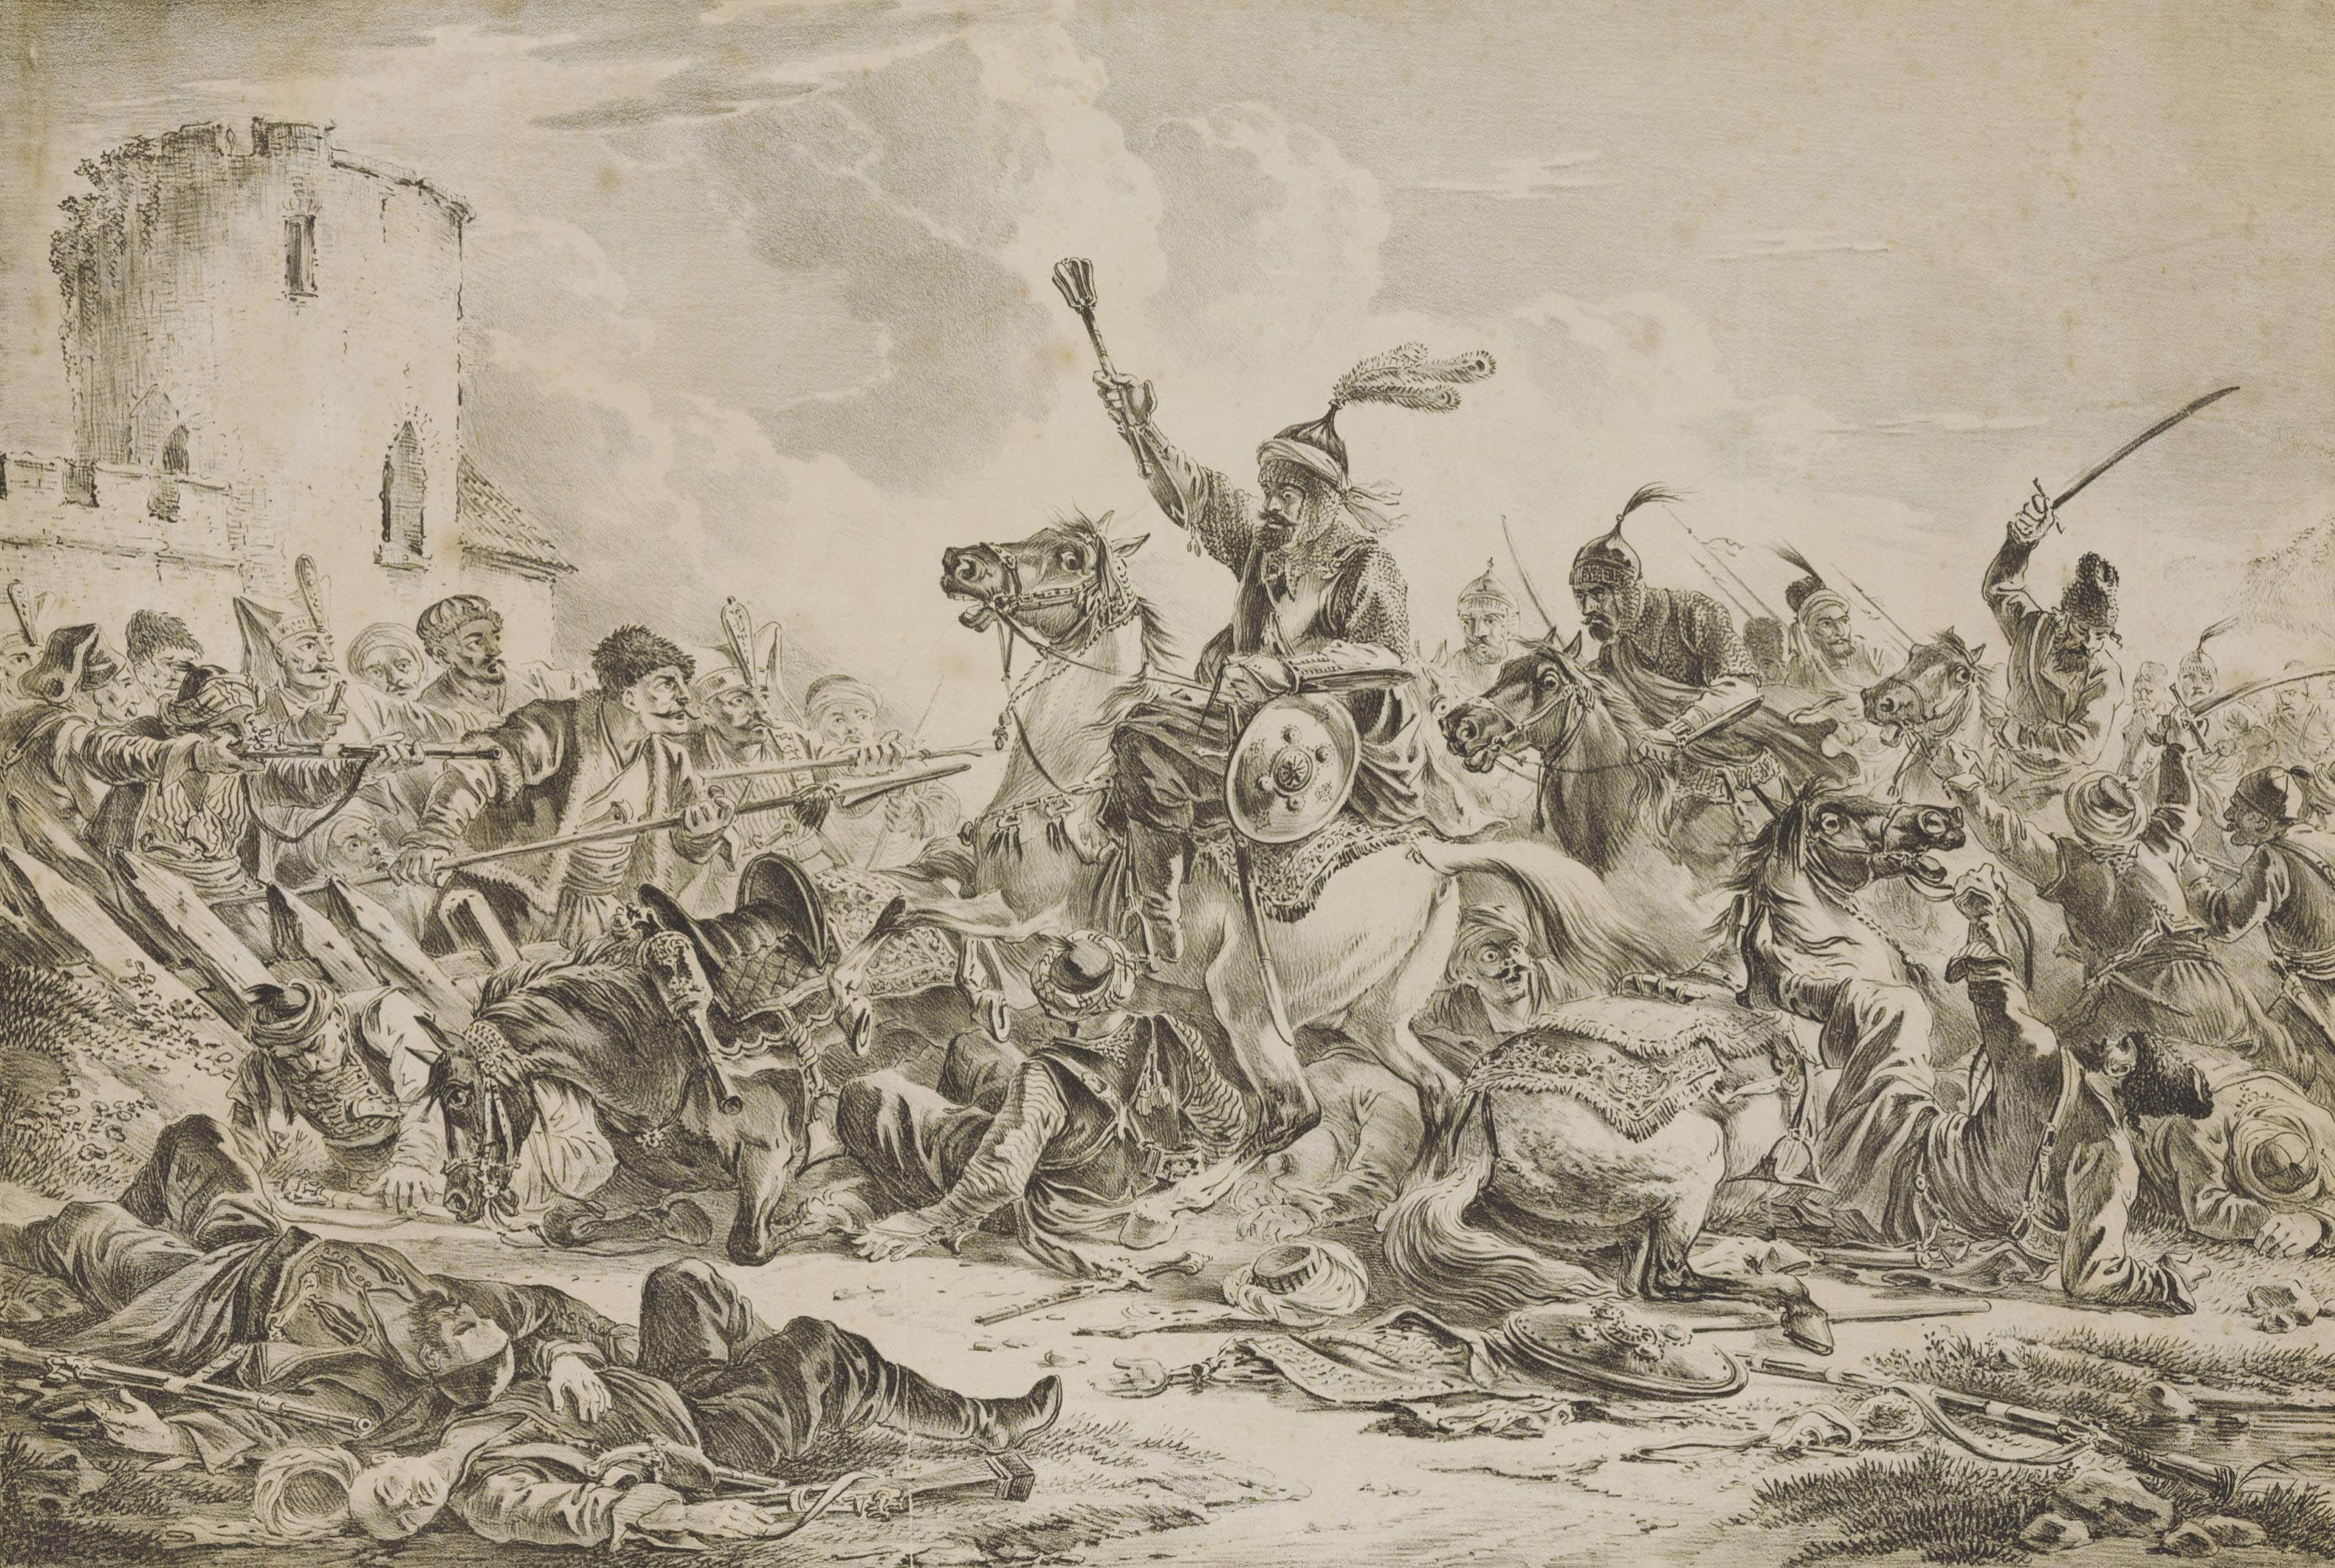 Battle between the Georgians and the mountain tribes